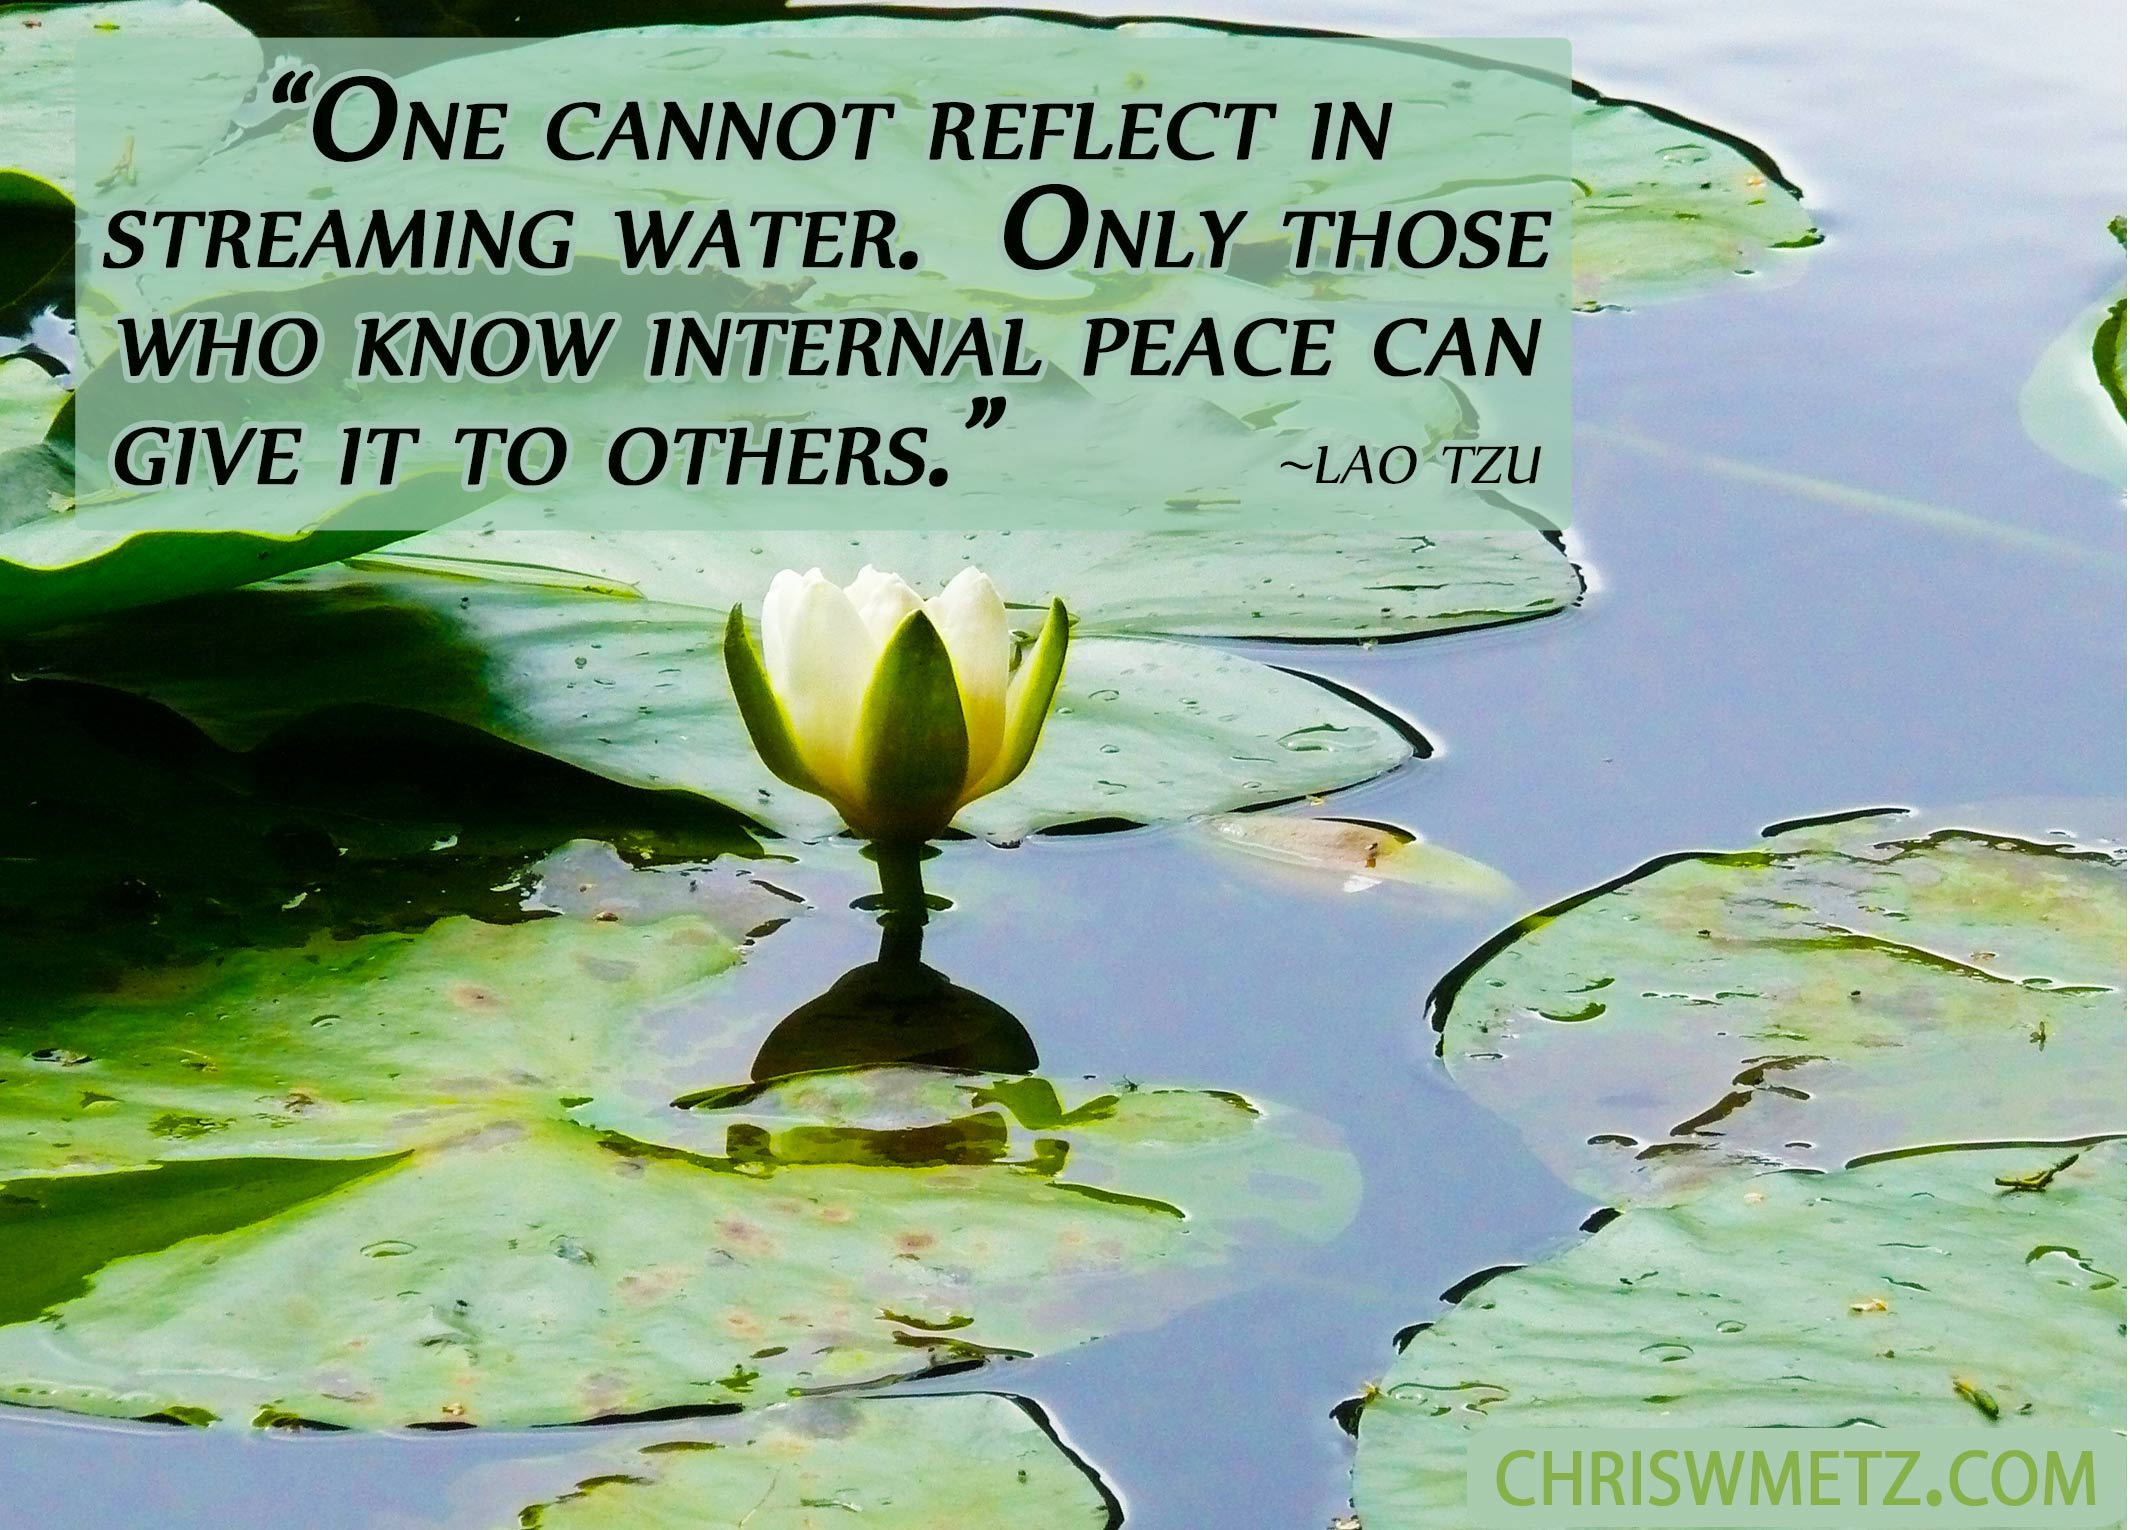 Peace Quote 5 Lao Tzu Finding peace by learning from those who have found it.